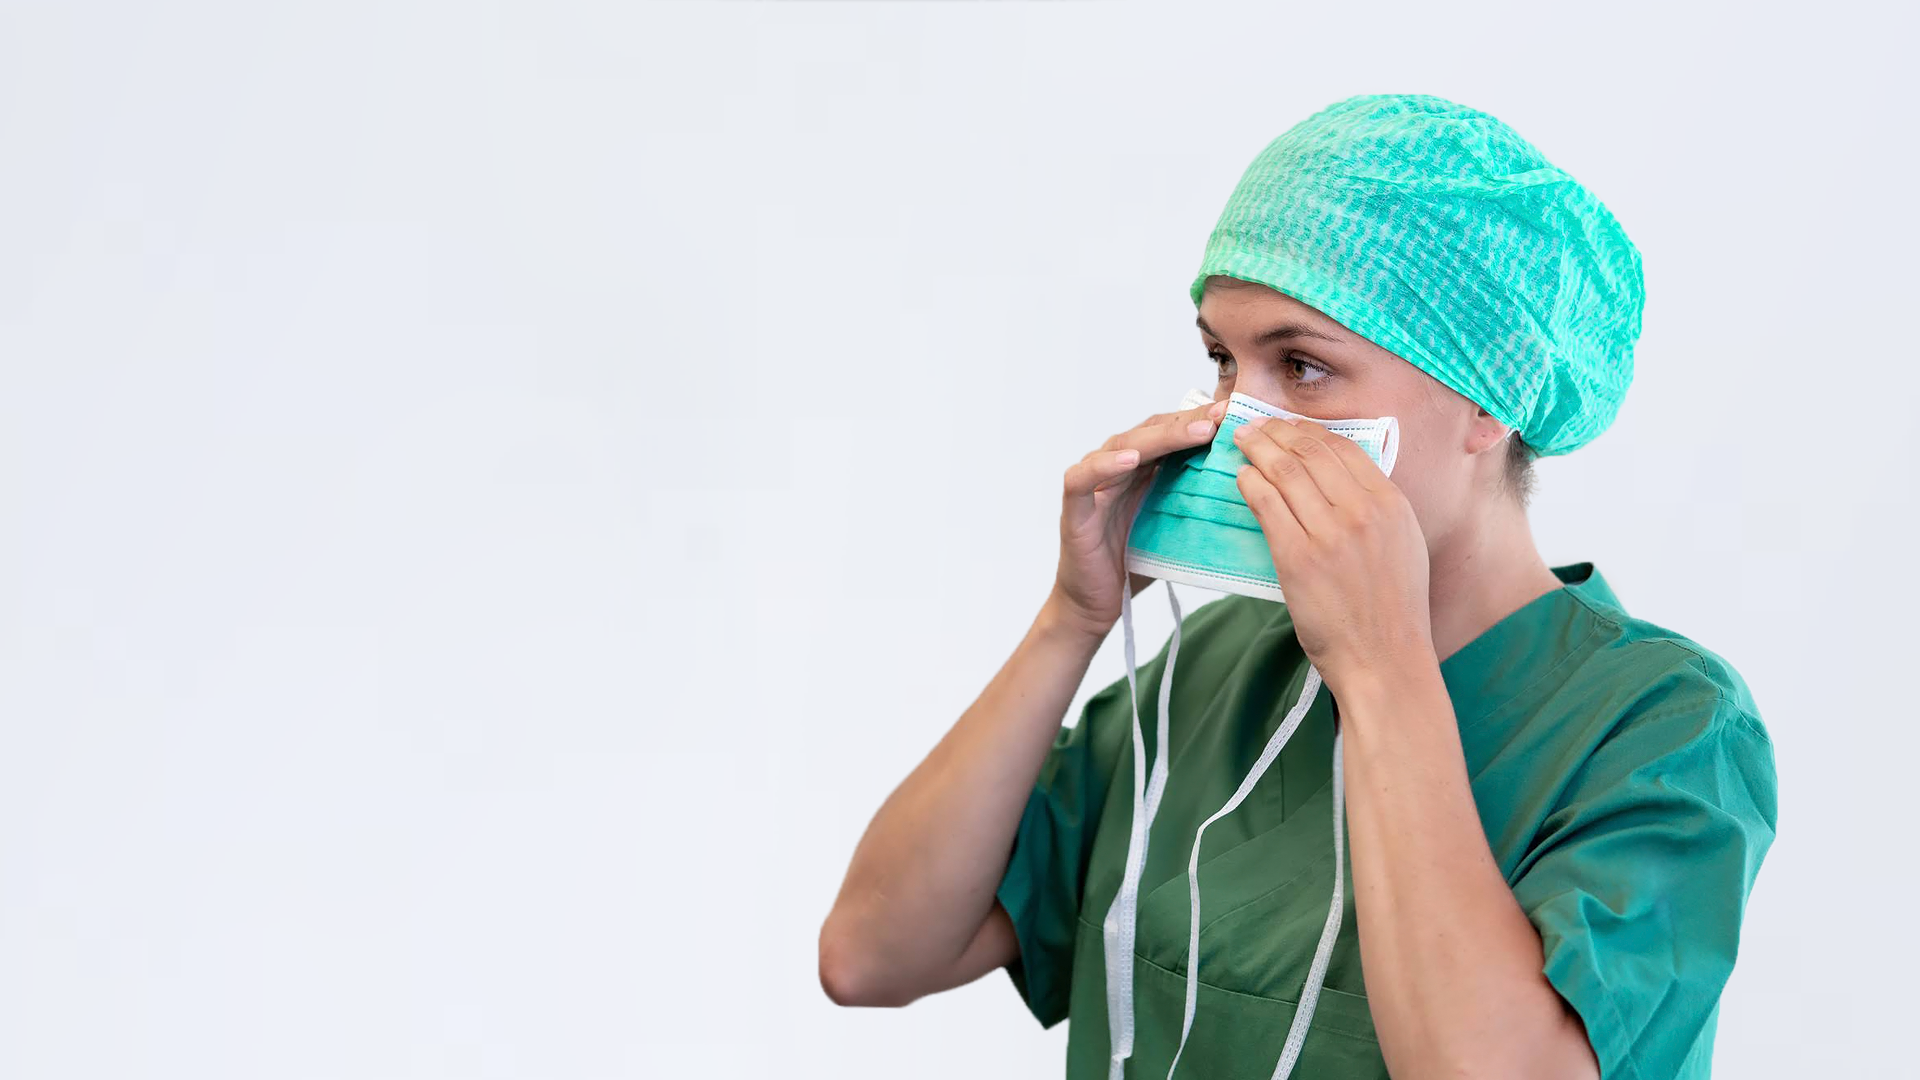 Surgical Face Mask Type IIR - 1032